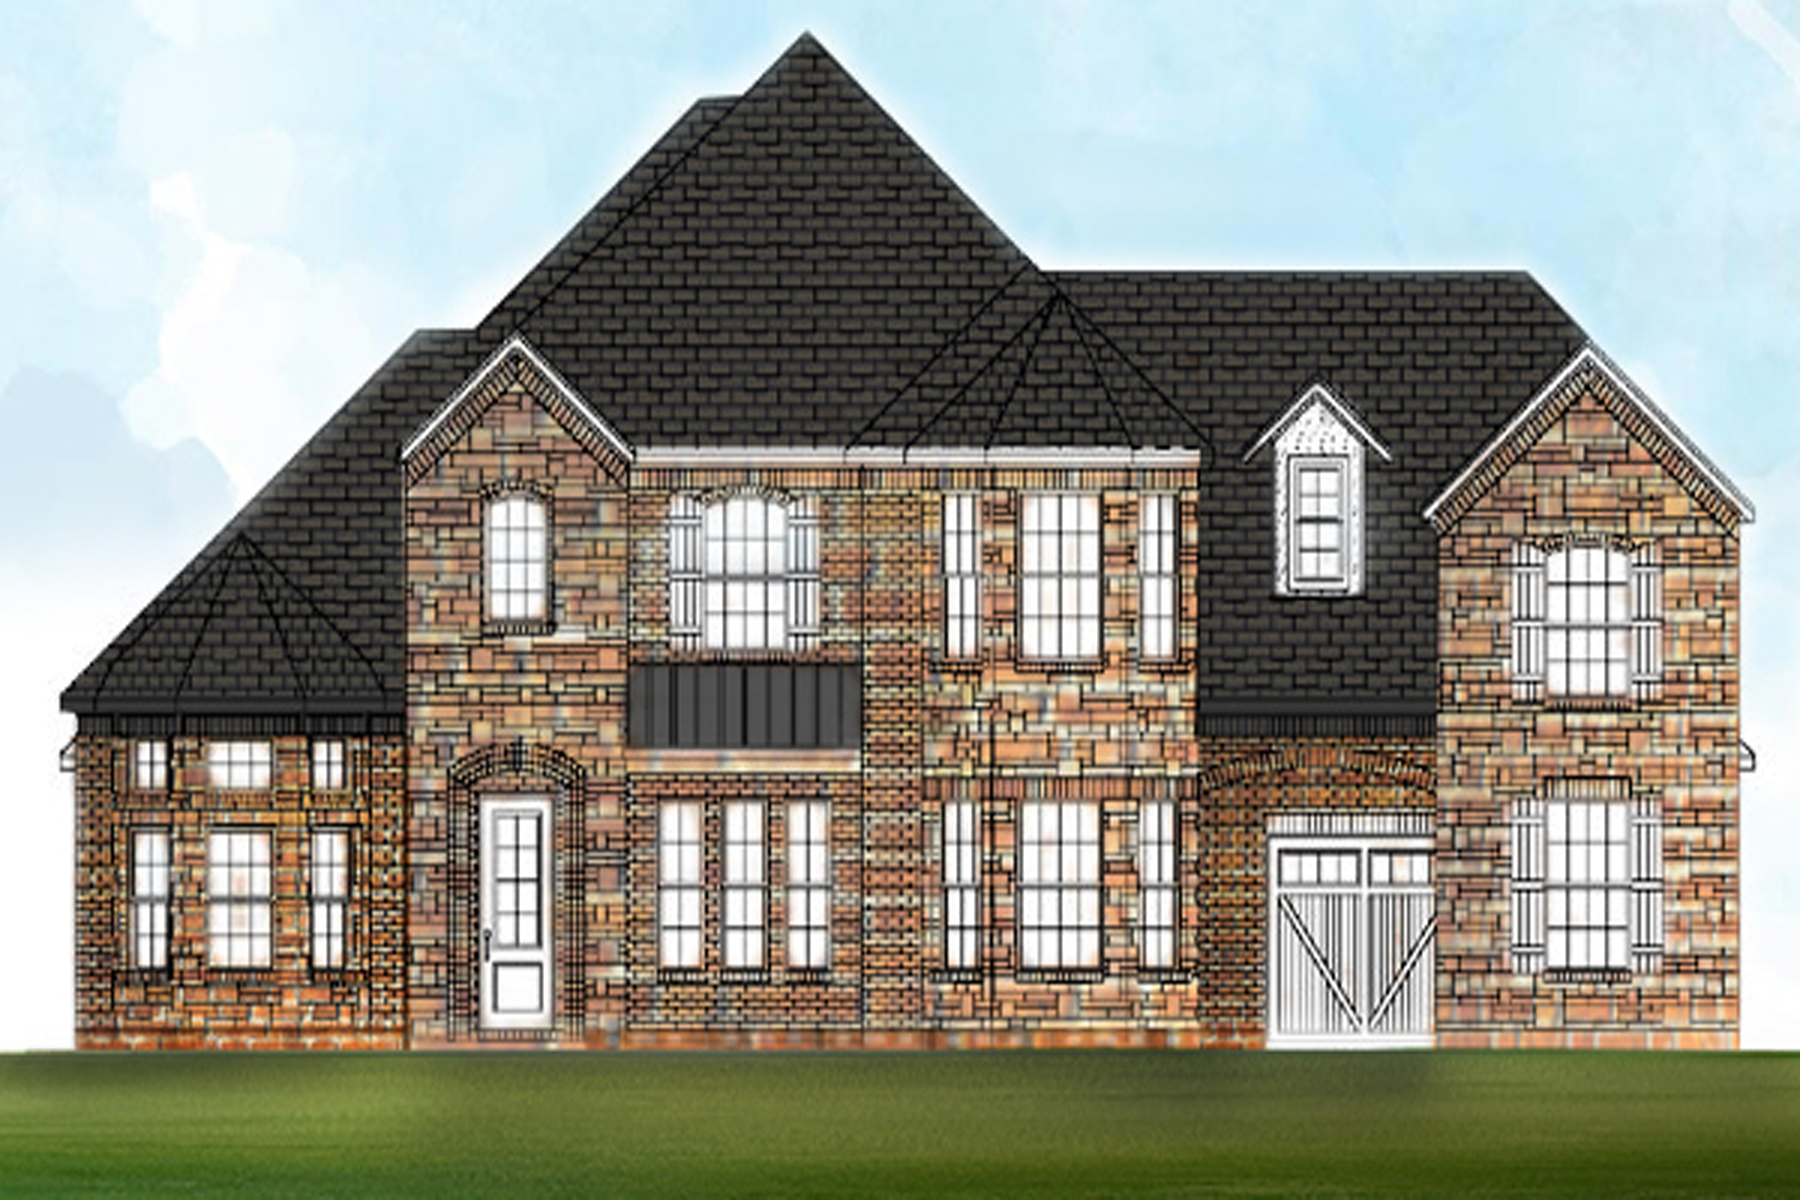 Casa Unifamiliar por un Venta en Luxurious New Construction In Gated Community 702 Bass Way Sandy Springs, Georgia, 30328 Estados Unidos